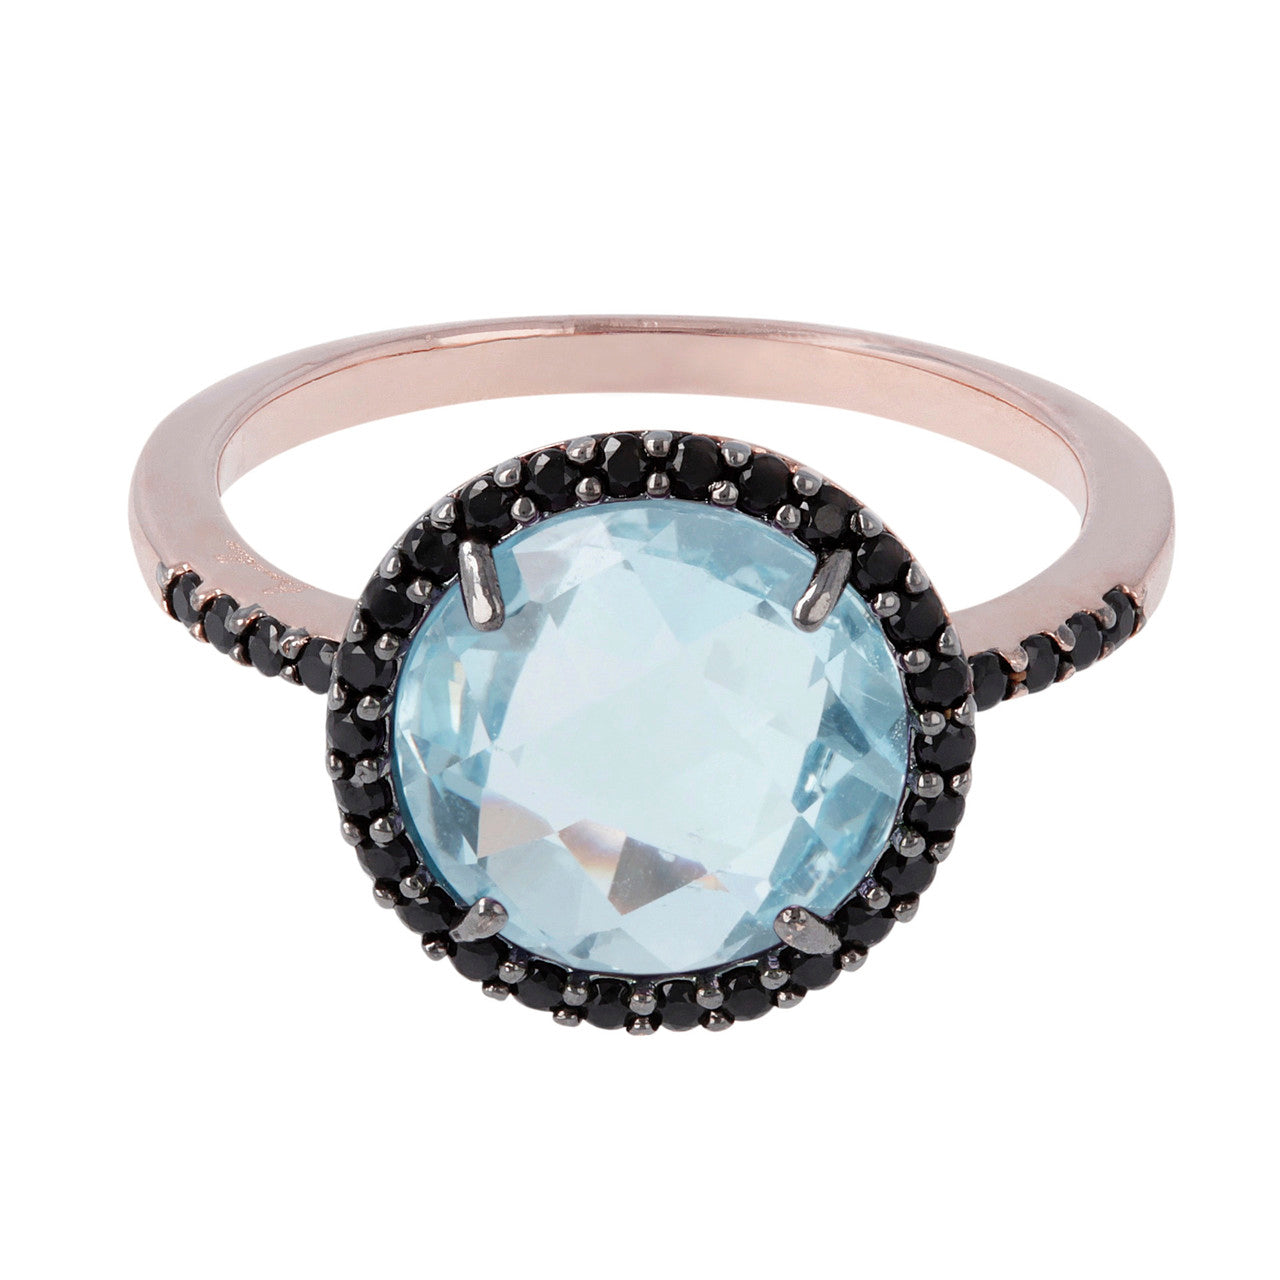 Solitaire engagement ring BLUE TOPAZ setting